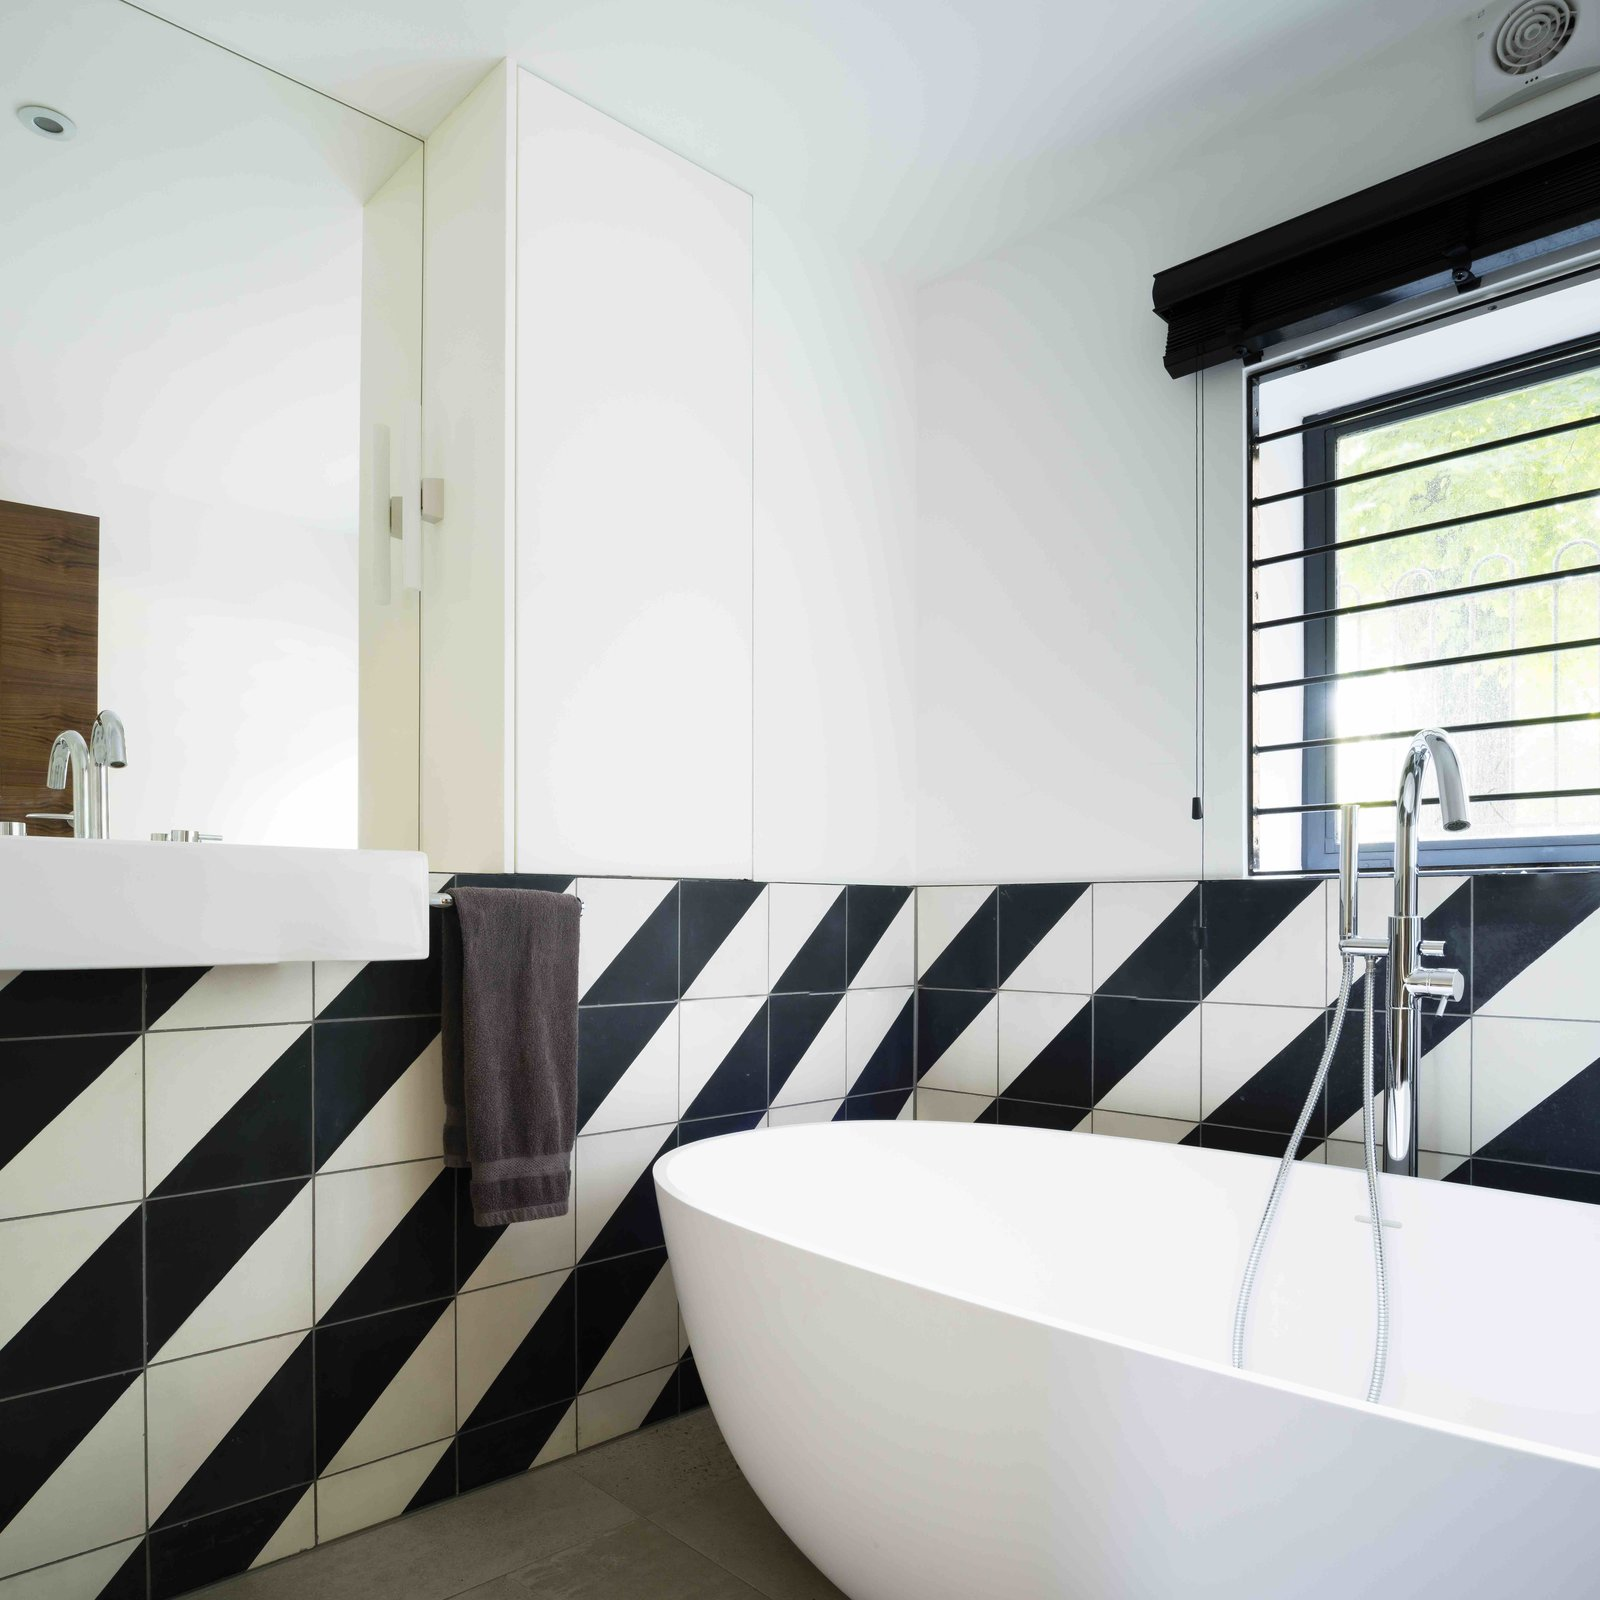 Bath Room, Freestanding Tub, Wall Mount Sink, and Ceramic Tile Wall  Photo 10 of 12 in An Old Grain Warehouse on the River Thames Is Transformed Into an Industrial-Modern Home